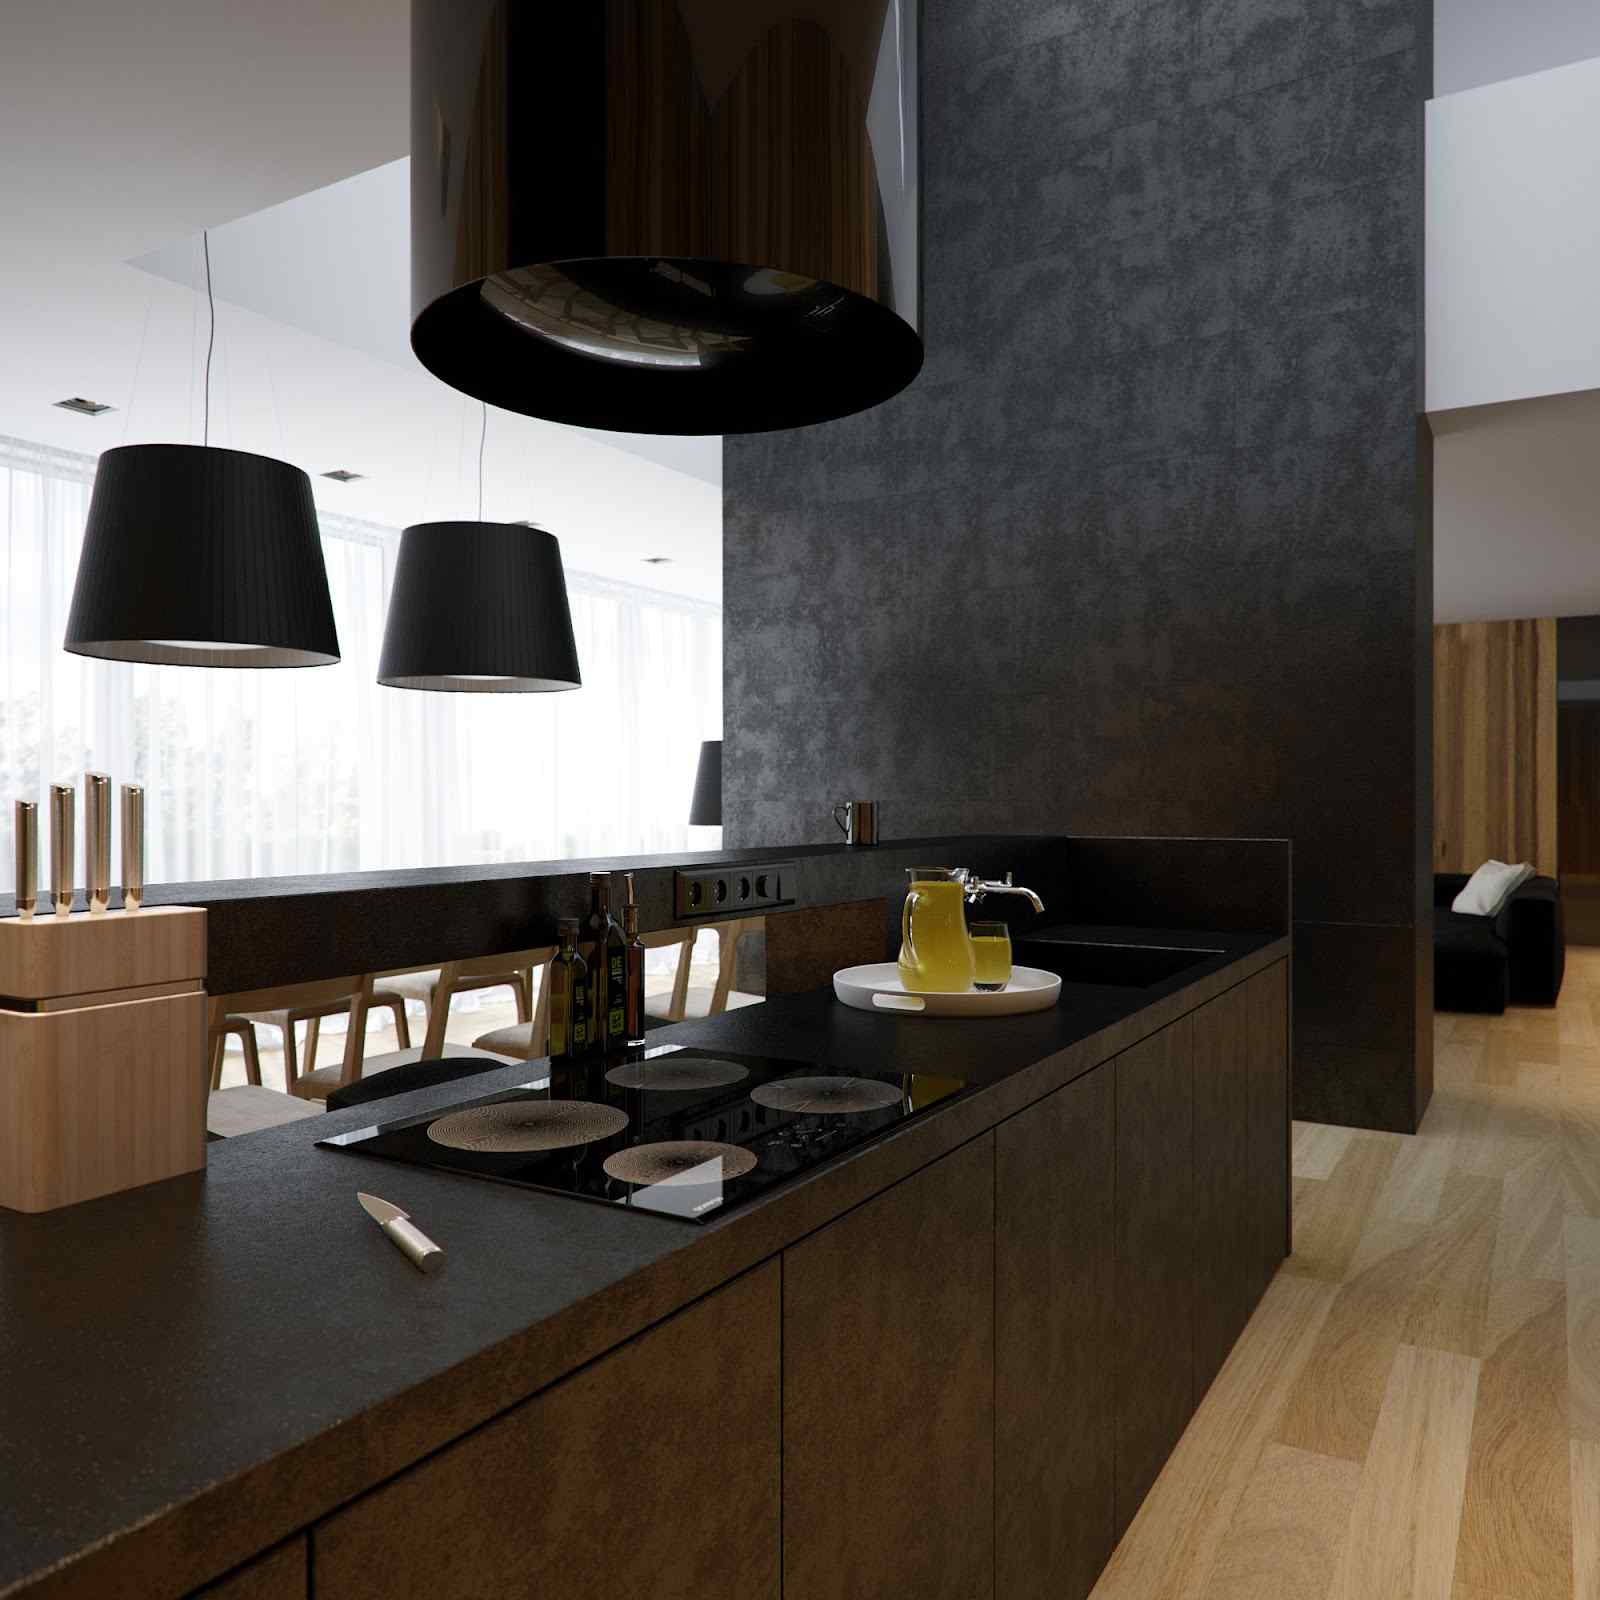 2-Black-white-kitchen-chimney-extractor-fan 6 Beautiful Black and White Decor Ideas